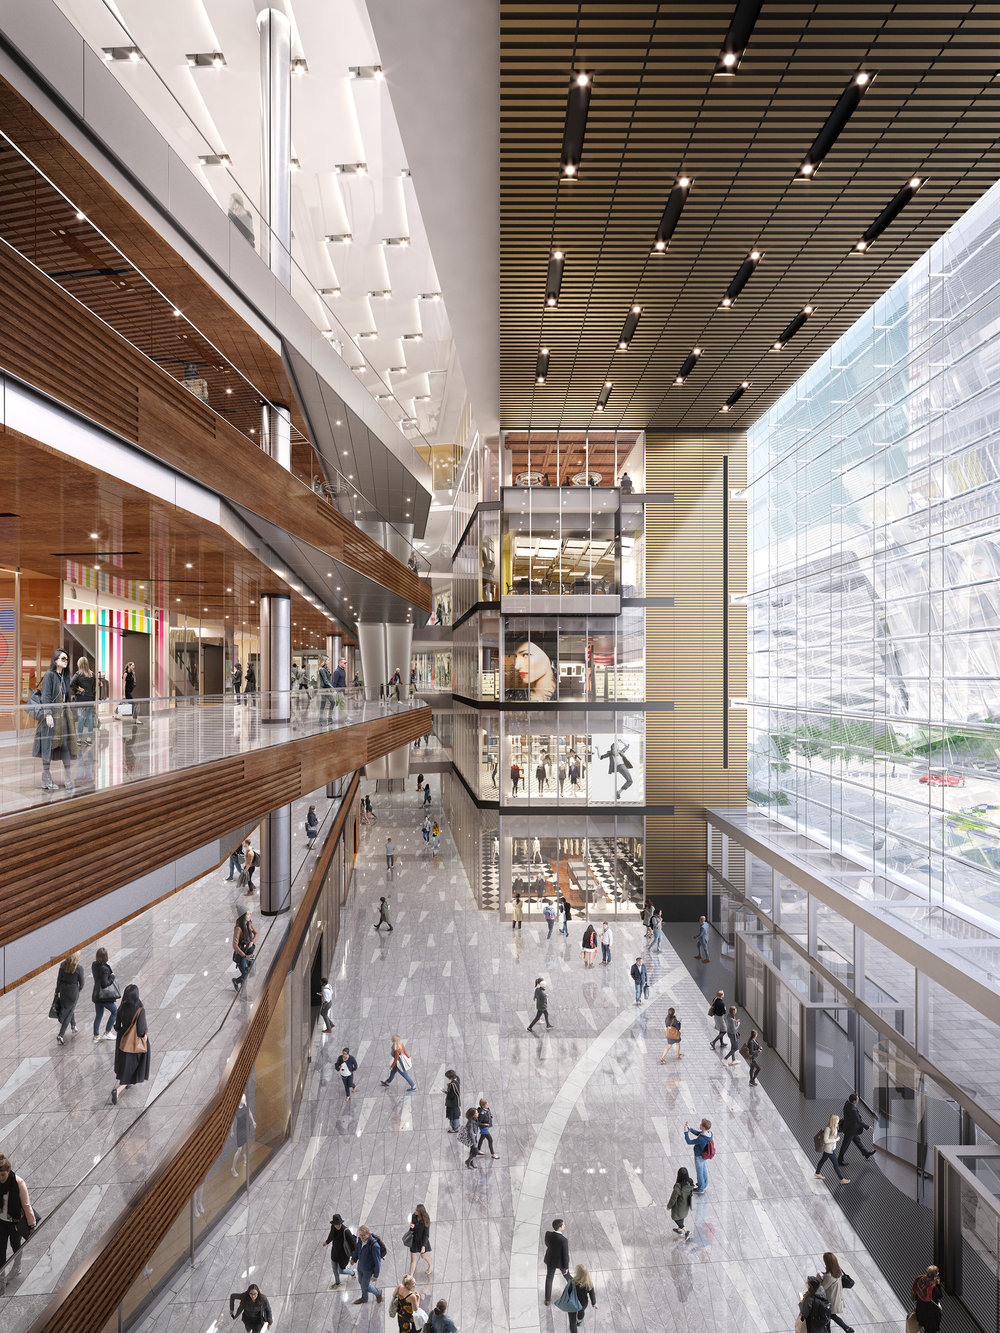 atrium_view__the_shops___restaurants_at_hudson_yards_-_courtesy_of_related-oxford.jpg